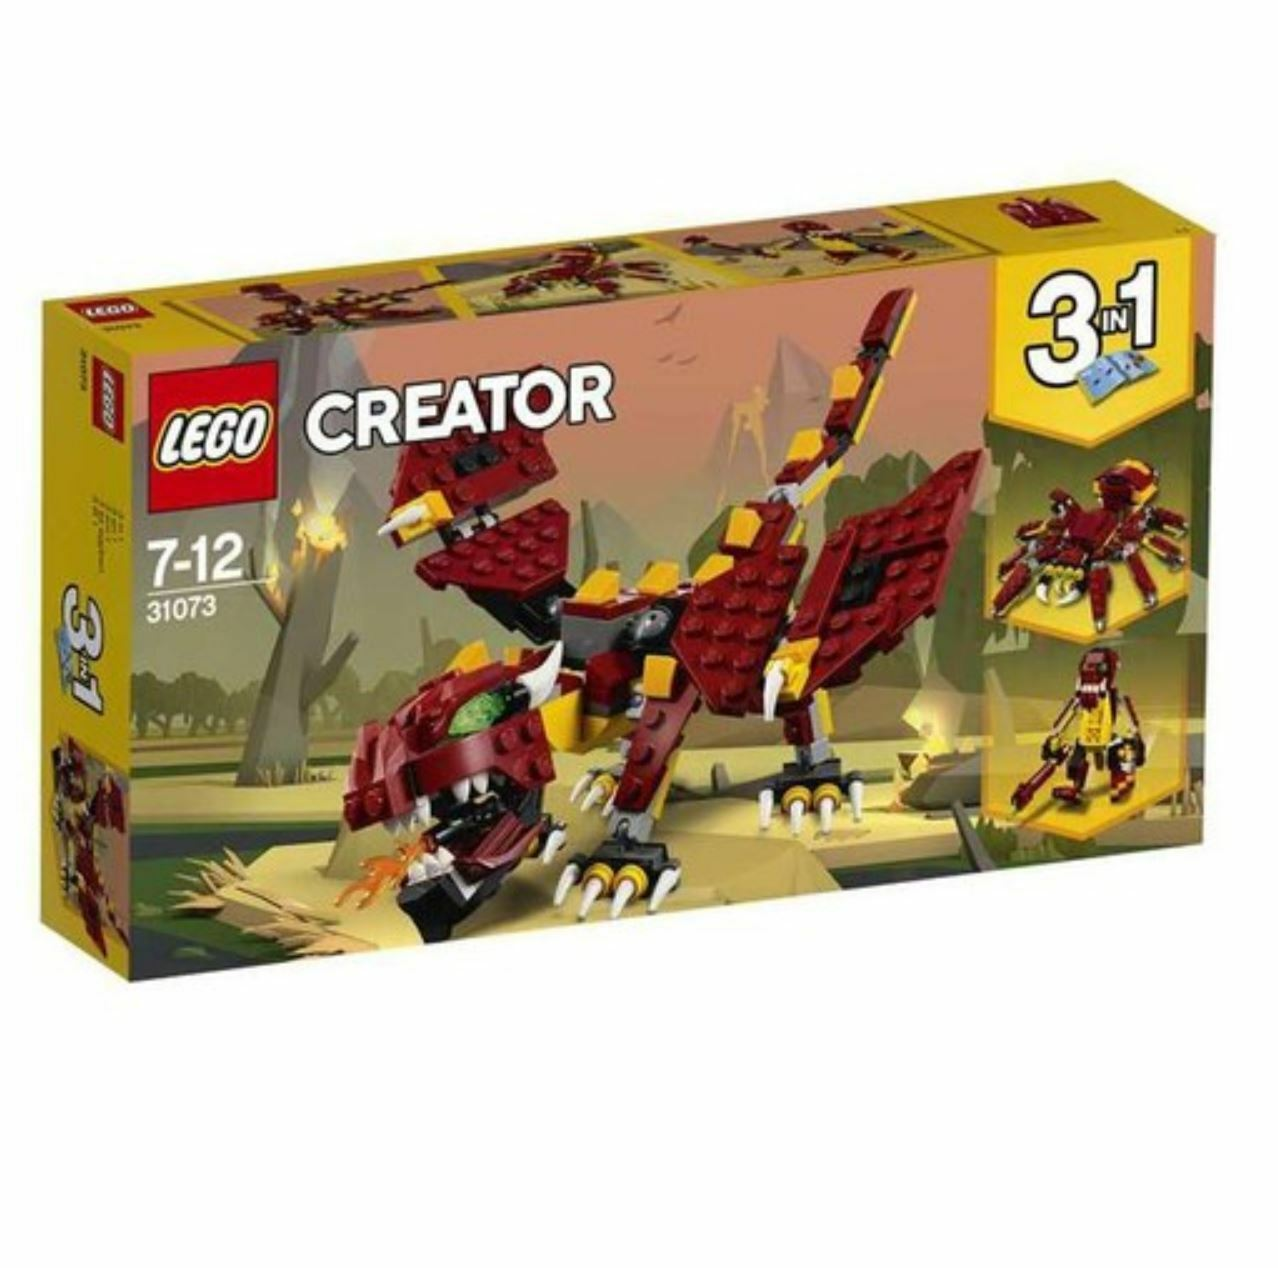 CREATOR Mythical Creatures 31073 2018 Version Free Shipping